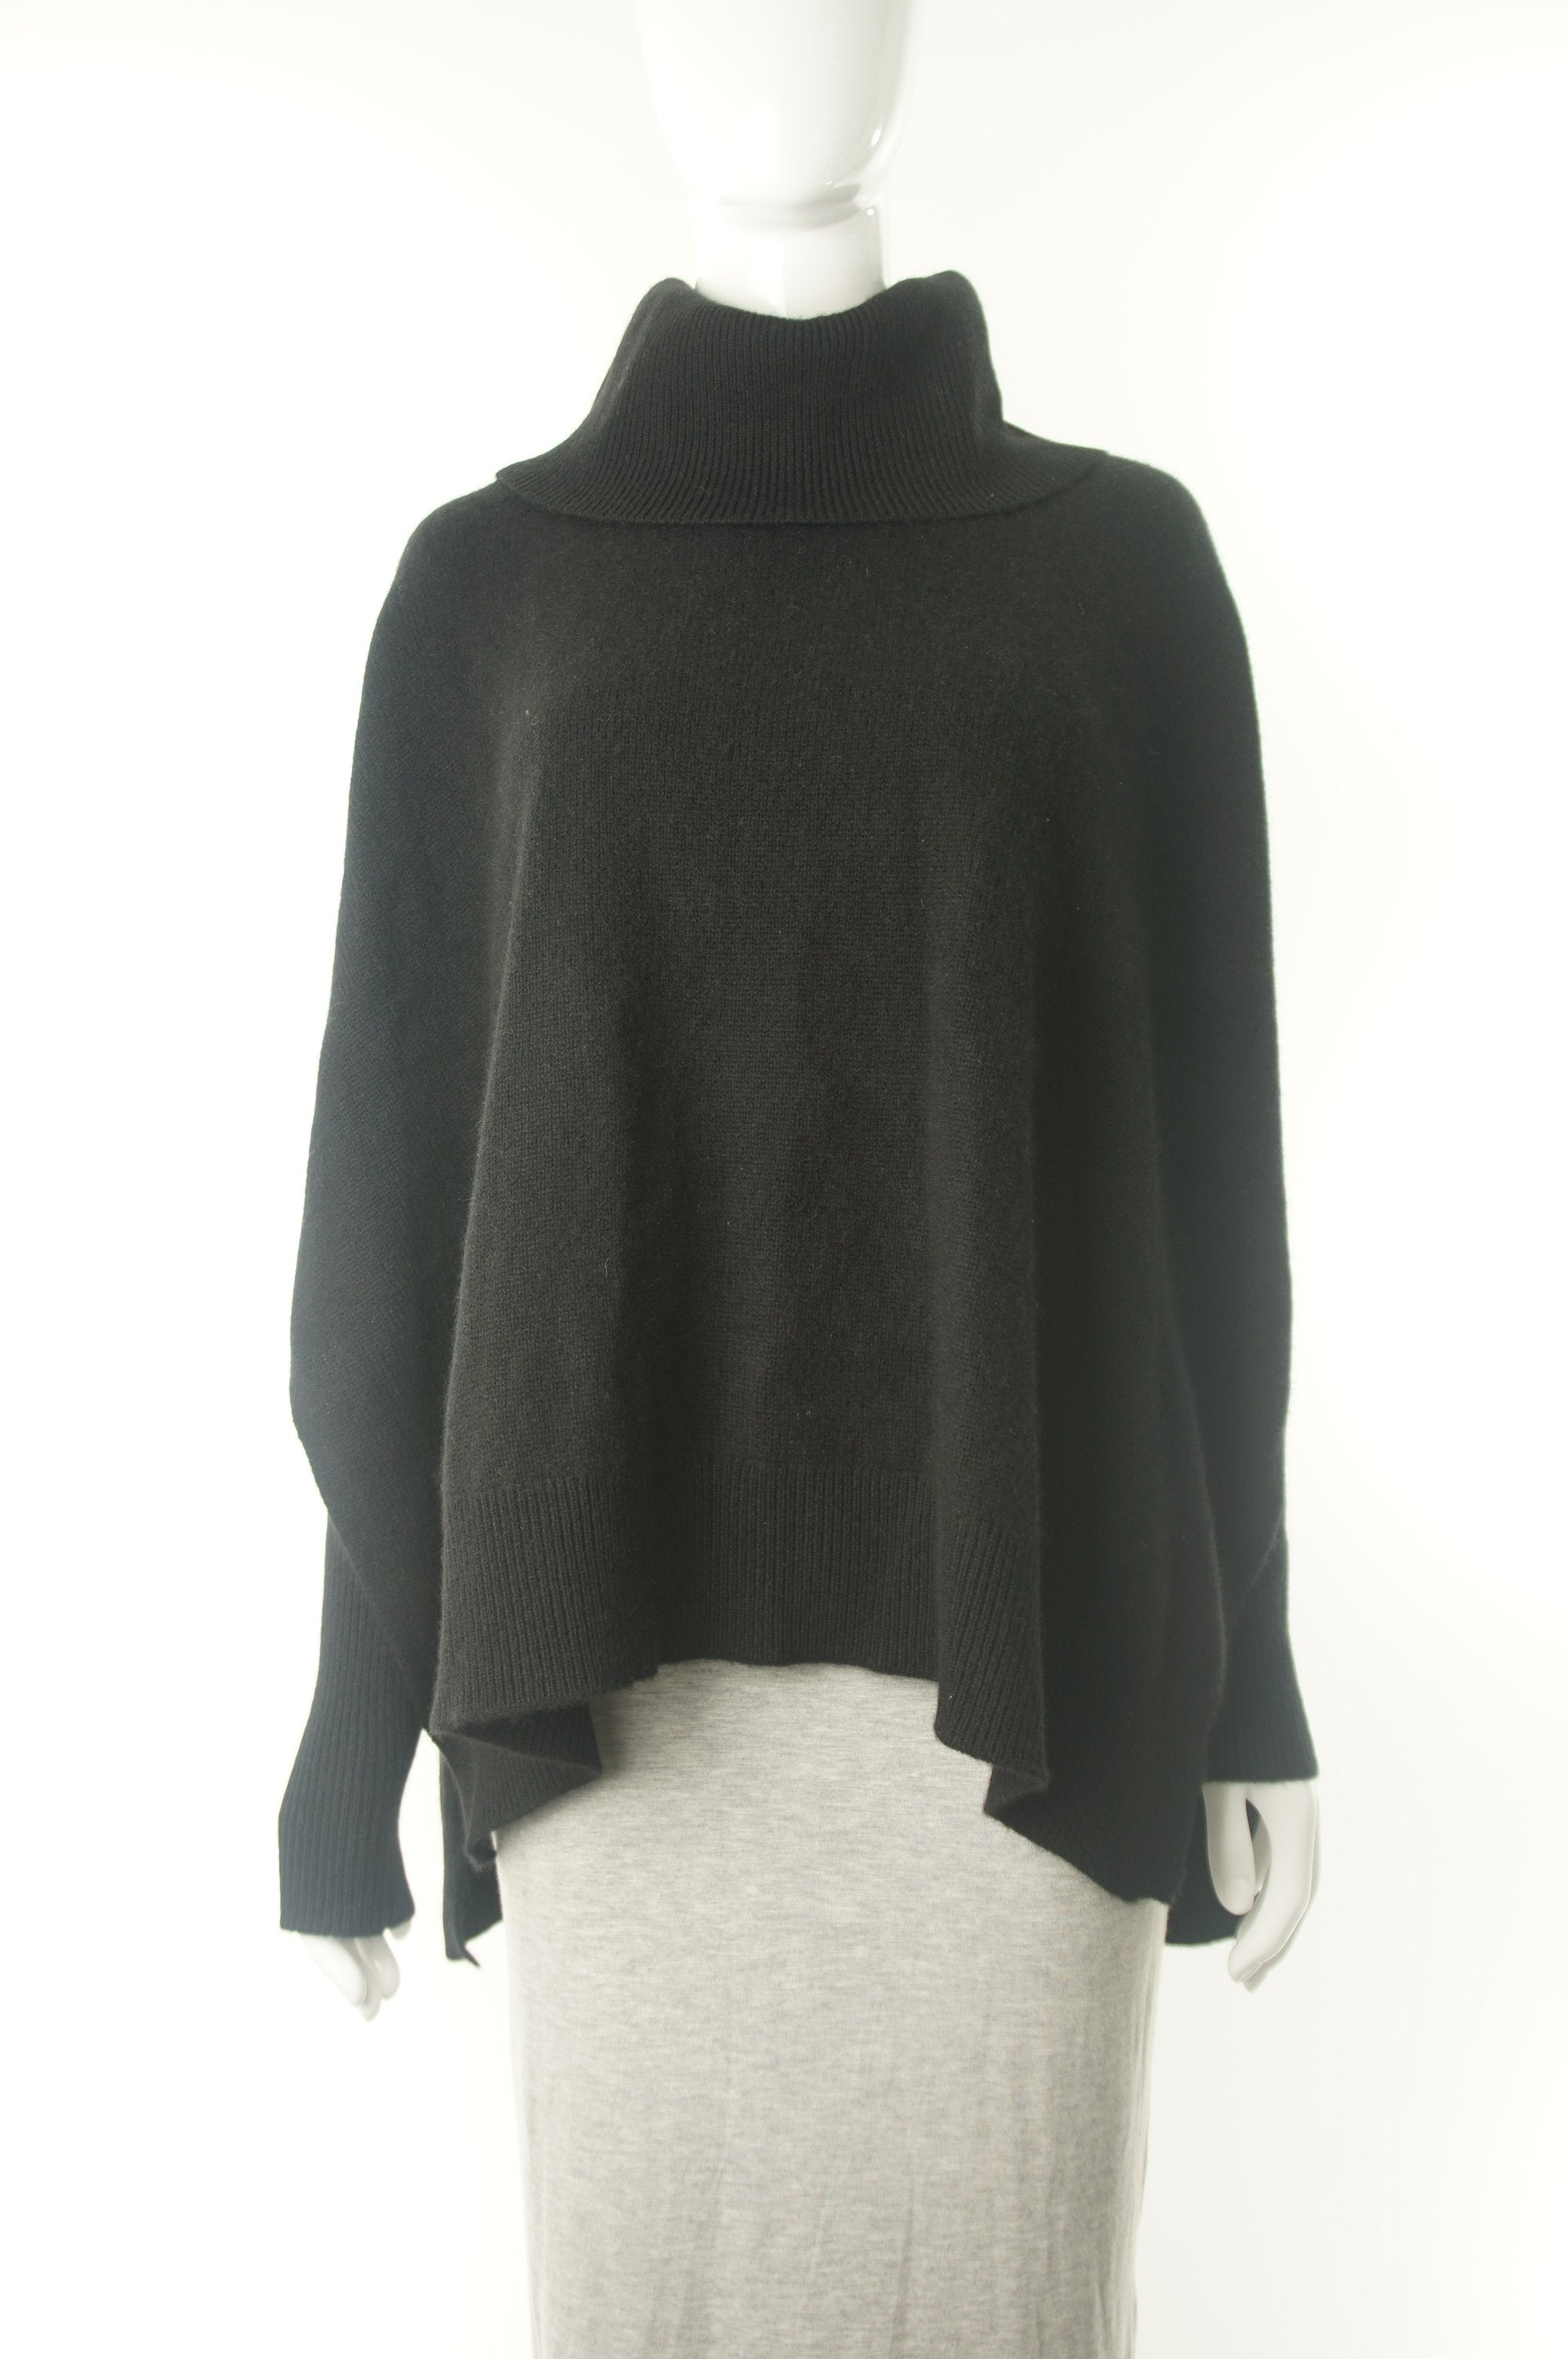 Lord & Taylor Cashmere Cape Poncho, Super soft pullover for a warm and elegant look., Black, 100% Cashmere, women's Tops, women's Black Tops, Lord & Taylor women's Tops, women's cashmere poncho, women's pullover sweater, lord&taylor cashmere sweater